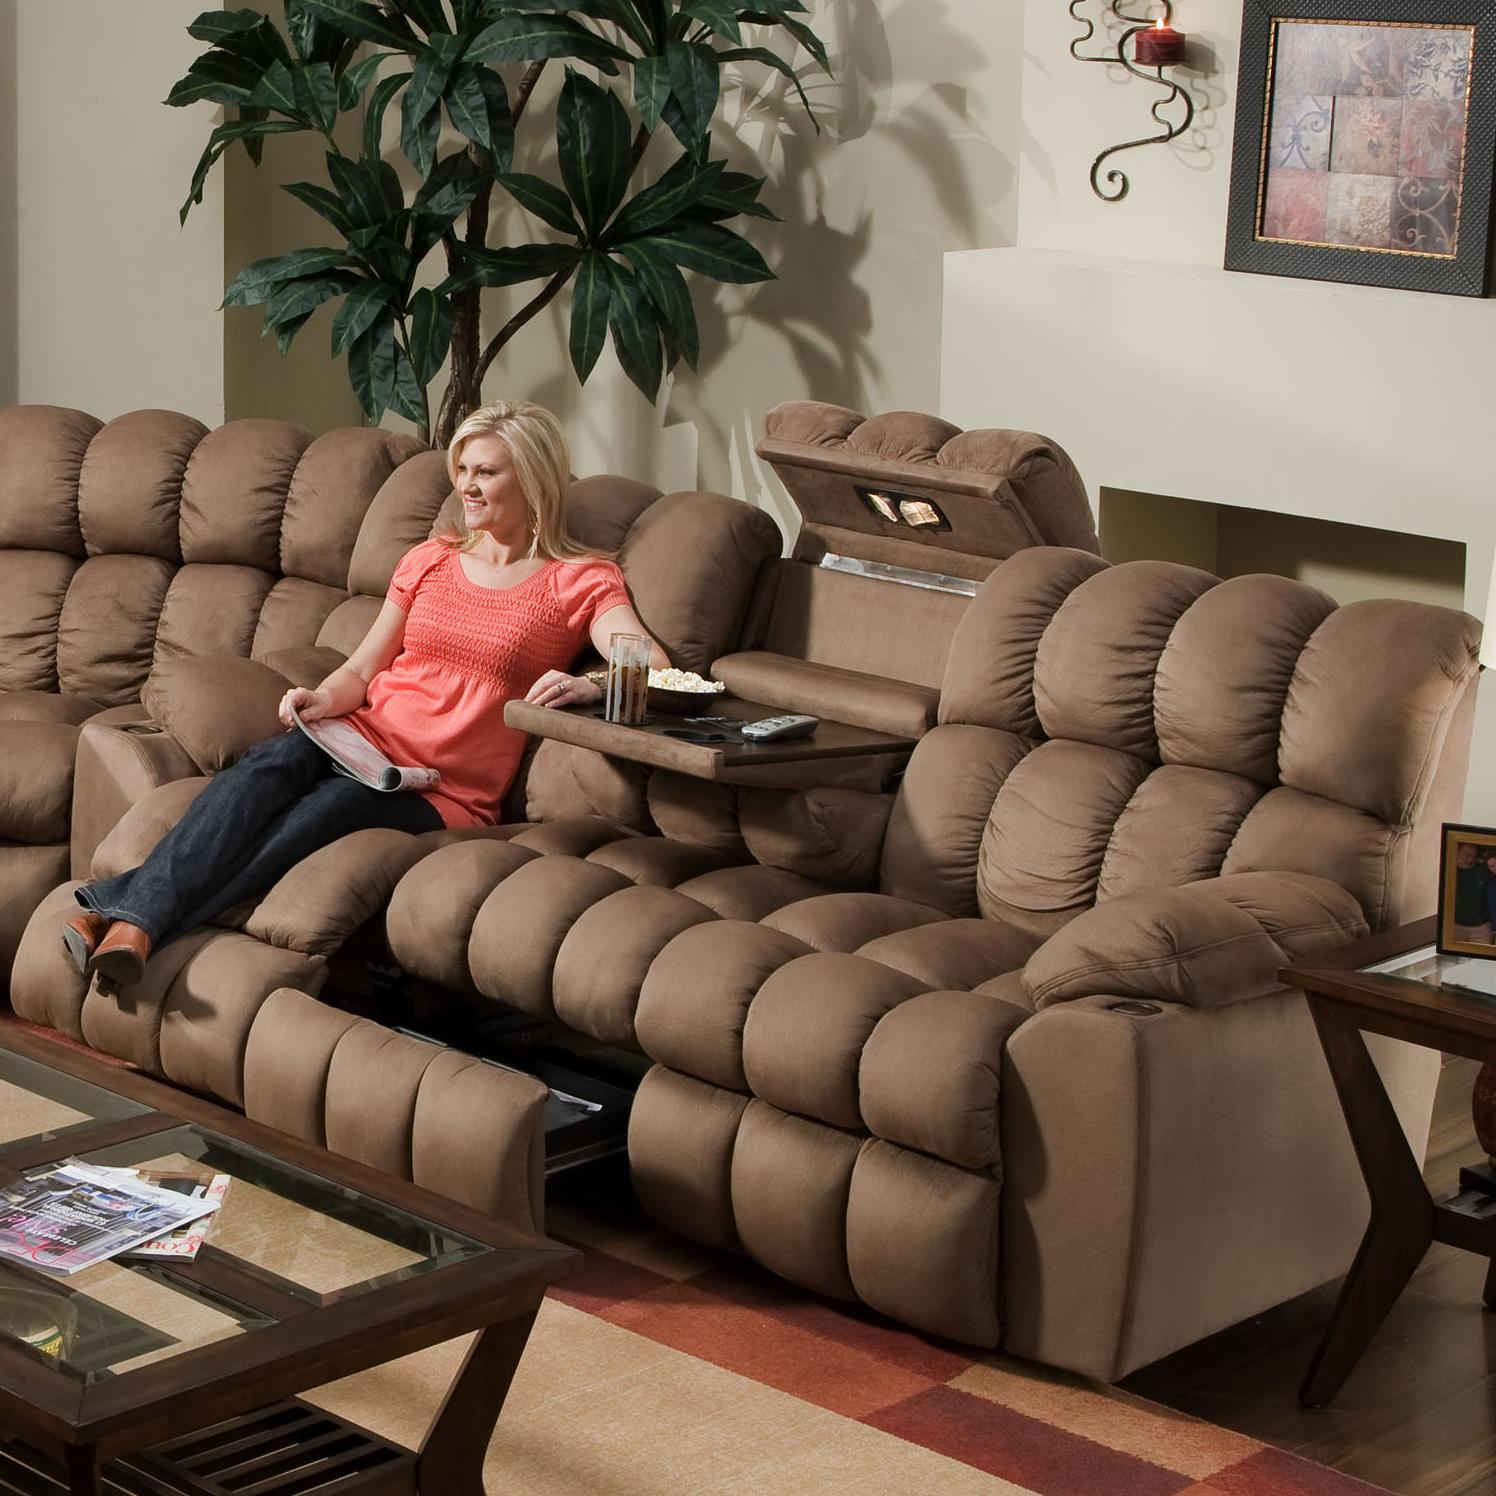 542 Sofa DDT/Drawer/Lights by Franklin at Fine Home Furnishings